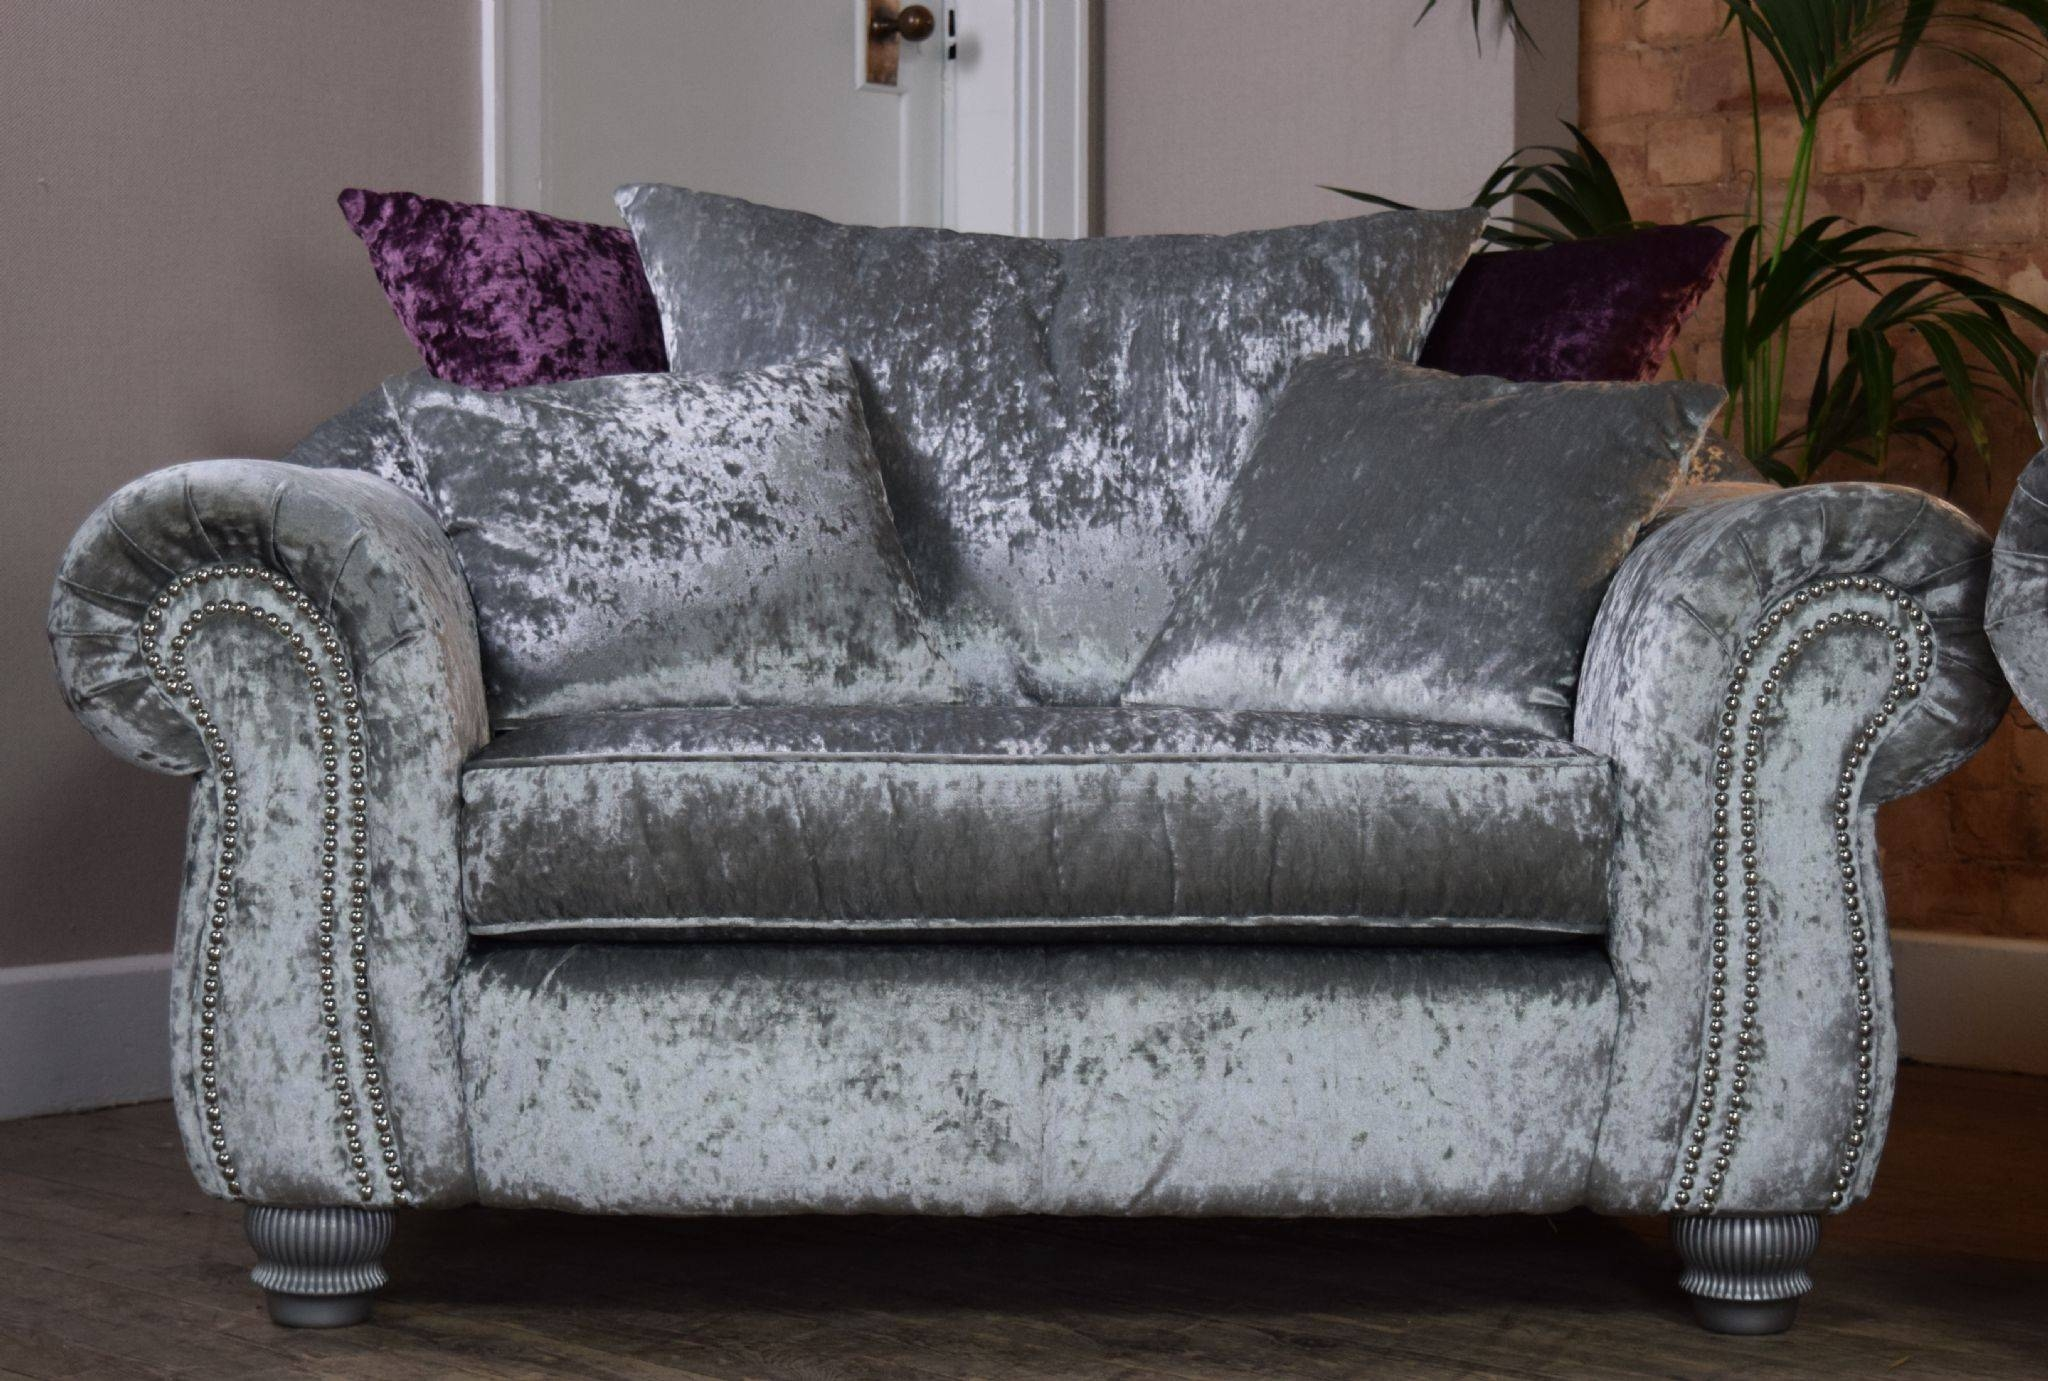 Set Luna Quantas 2 Seater Sofa Cuddle Chair Suite Set – Silver Within 3 Seater Sofa And Cuddle Chairs (View 4 of 30)